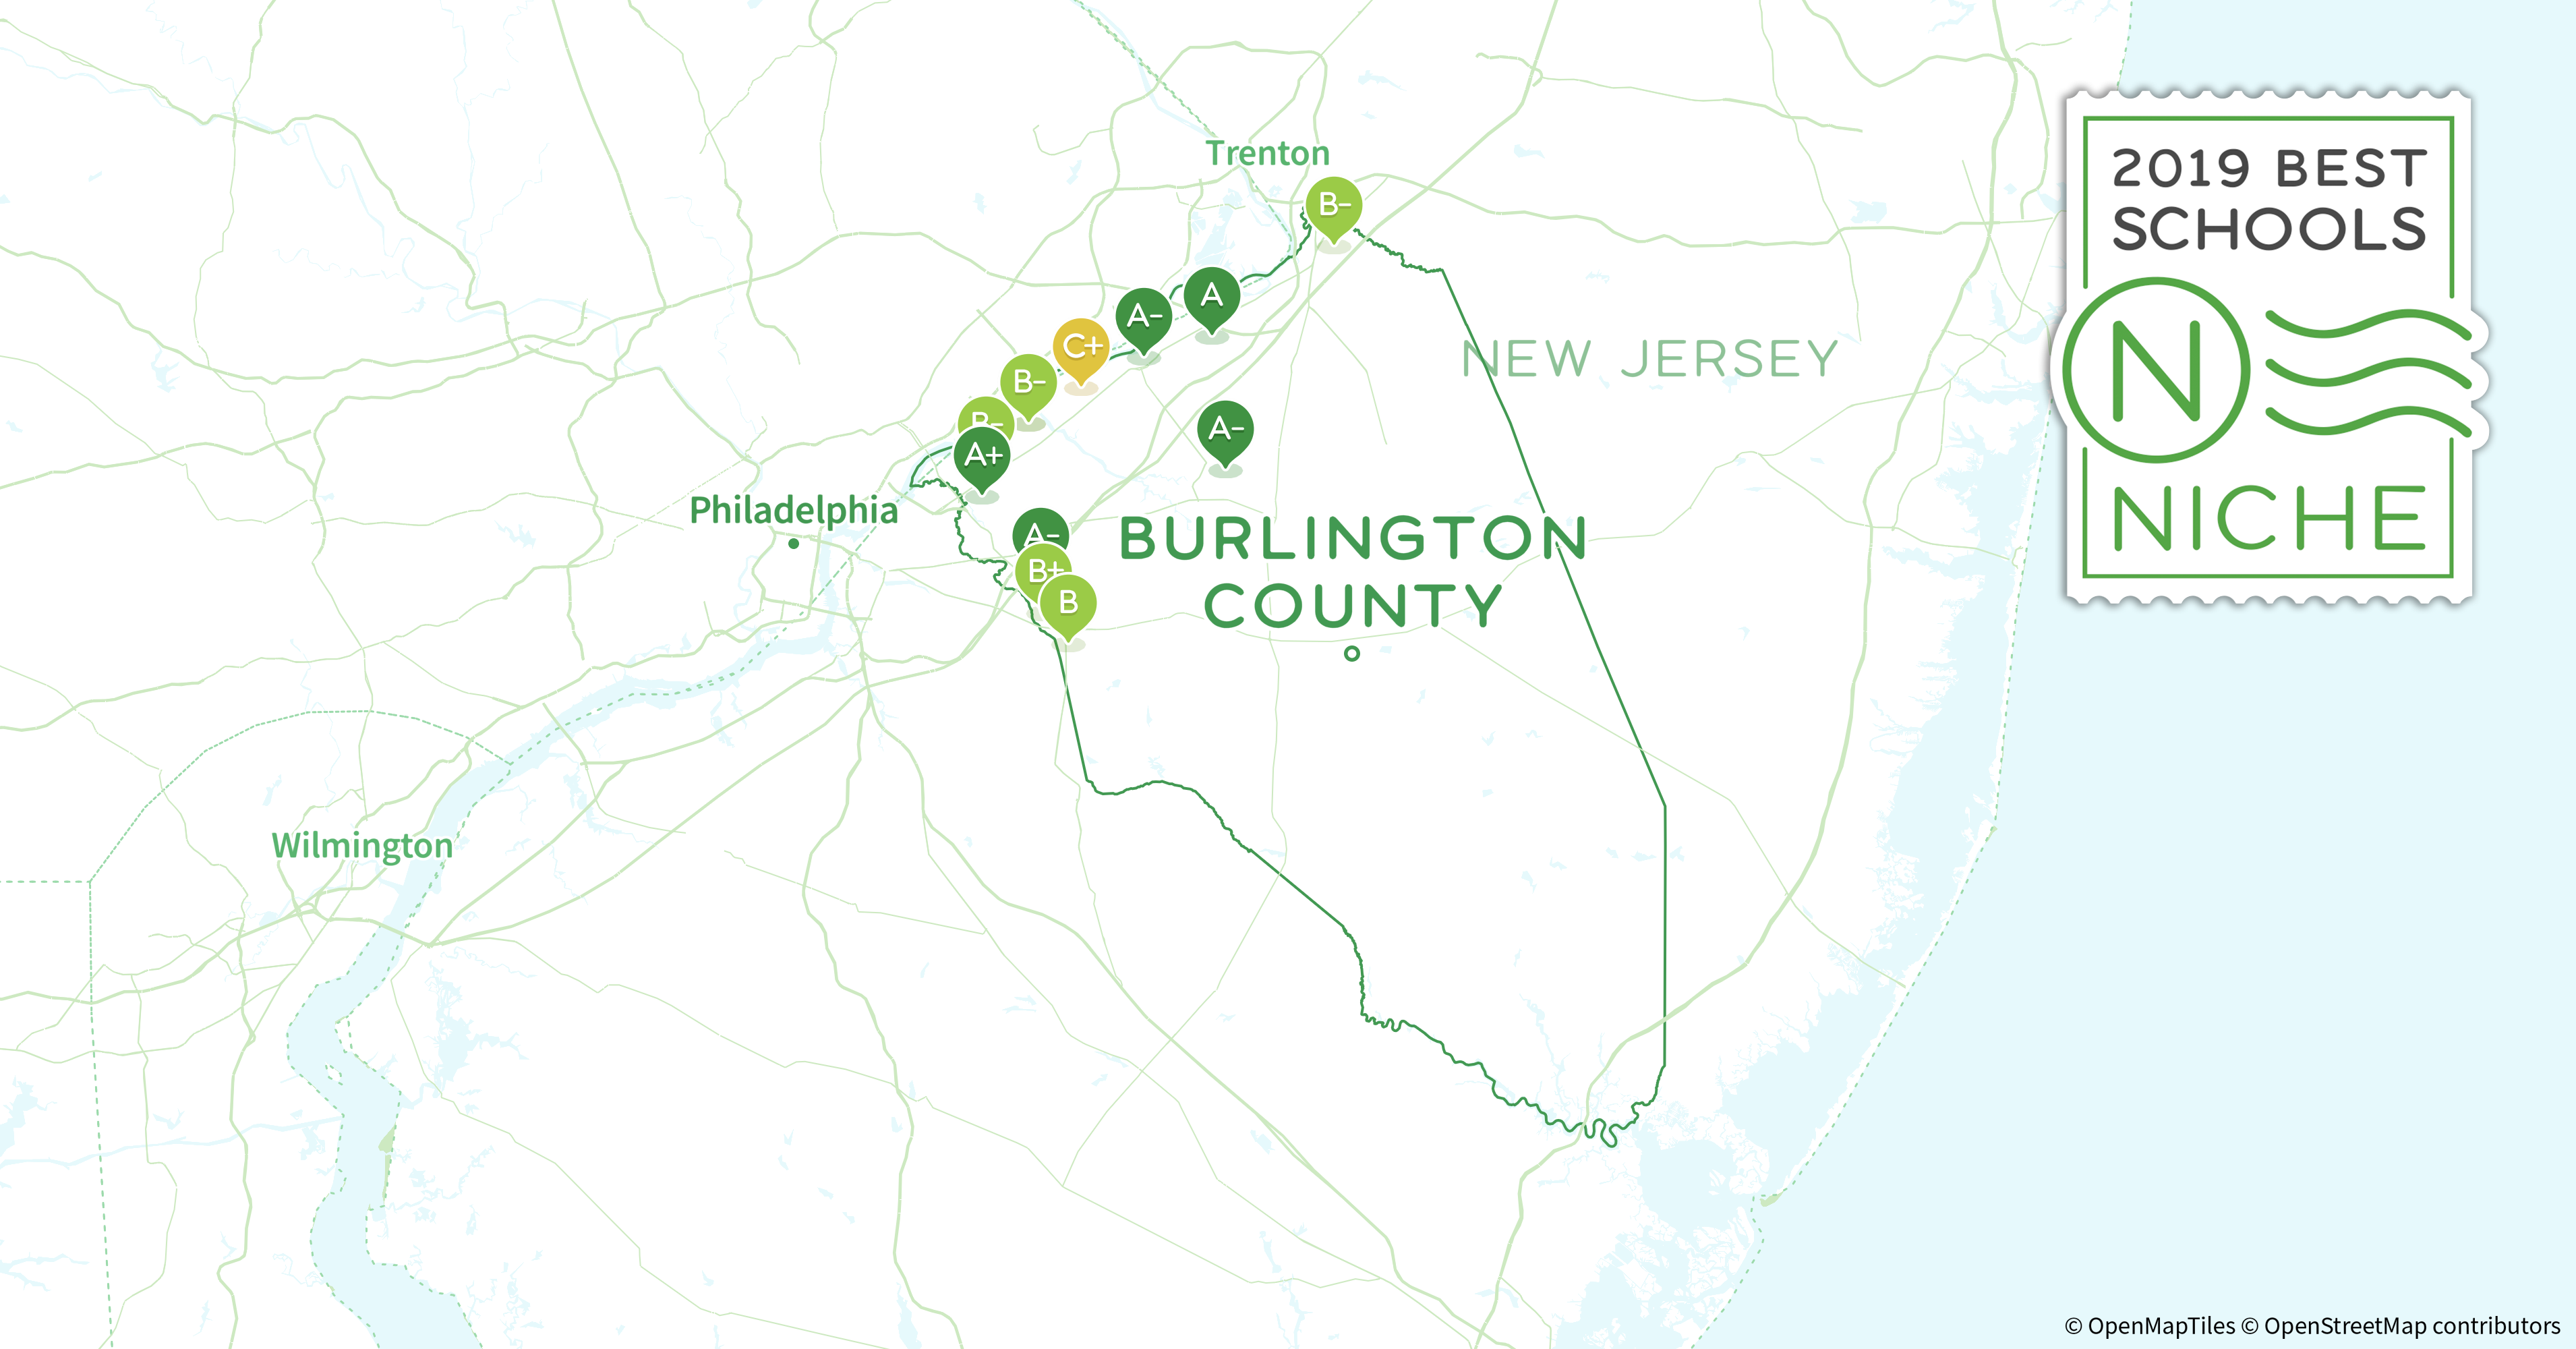 2019 Best Districts for Athletes in Burlington County ... Map Burlington County Nj on cape may county, bordentown nj map, bergen county, hudson county, wharton state forest nj map, cherry hill nj map, blue anchor nj map, mercer county nj map, camden county, somerset county, somerset park nj map, gloucester county, passaic county, historic smithville nj trail map, cumberland county, mercer county, mount laurel nj map, south jersey, bergen county nj map, warren county, morris county, salem county nj map, essex county, gloucester county nj map, vista center nj map, westampton nj map, lakehurst nj map, ocean county, middlesex county, union county, cumberland county nj map, hunterdon county, monmouth county nj map, stafford county nj map, atlantic county nj map, atlantic county, ocean county nj map, south bound brook nj map, monmouth county,